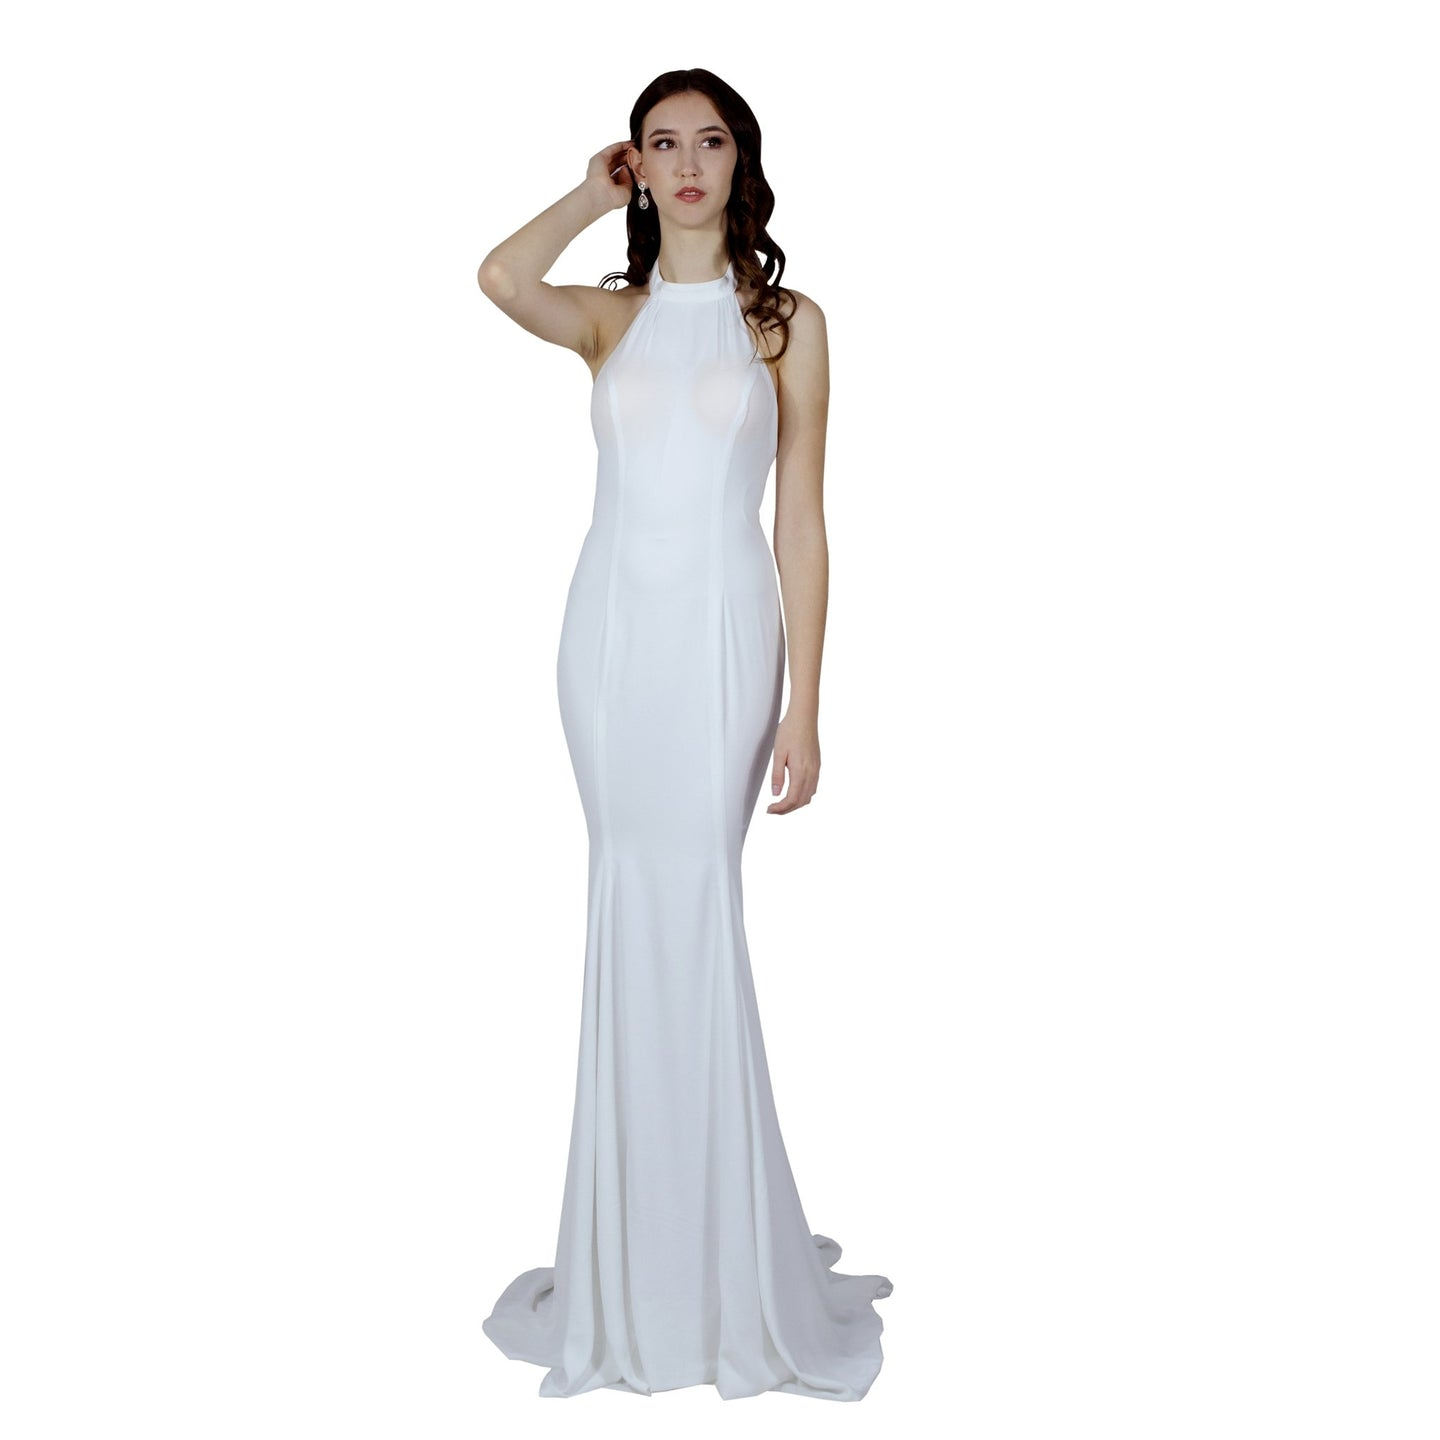 Halter neck silk crepe wedding dress Envious Bridal & Formal Perth